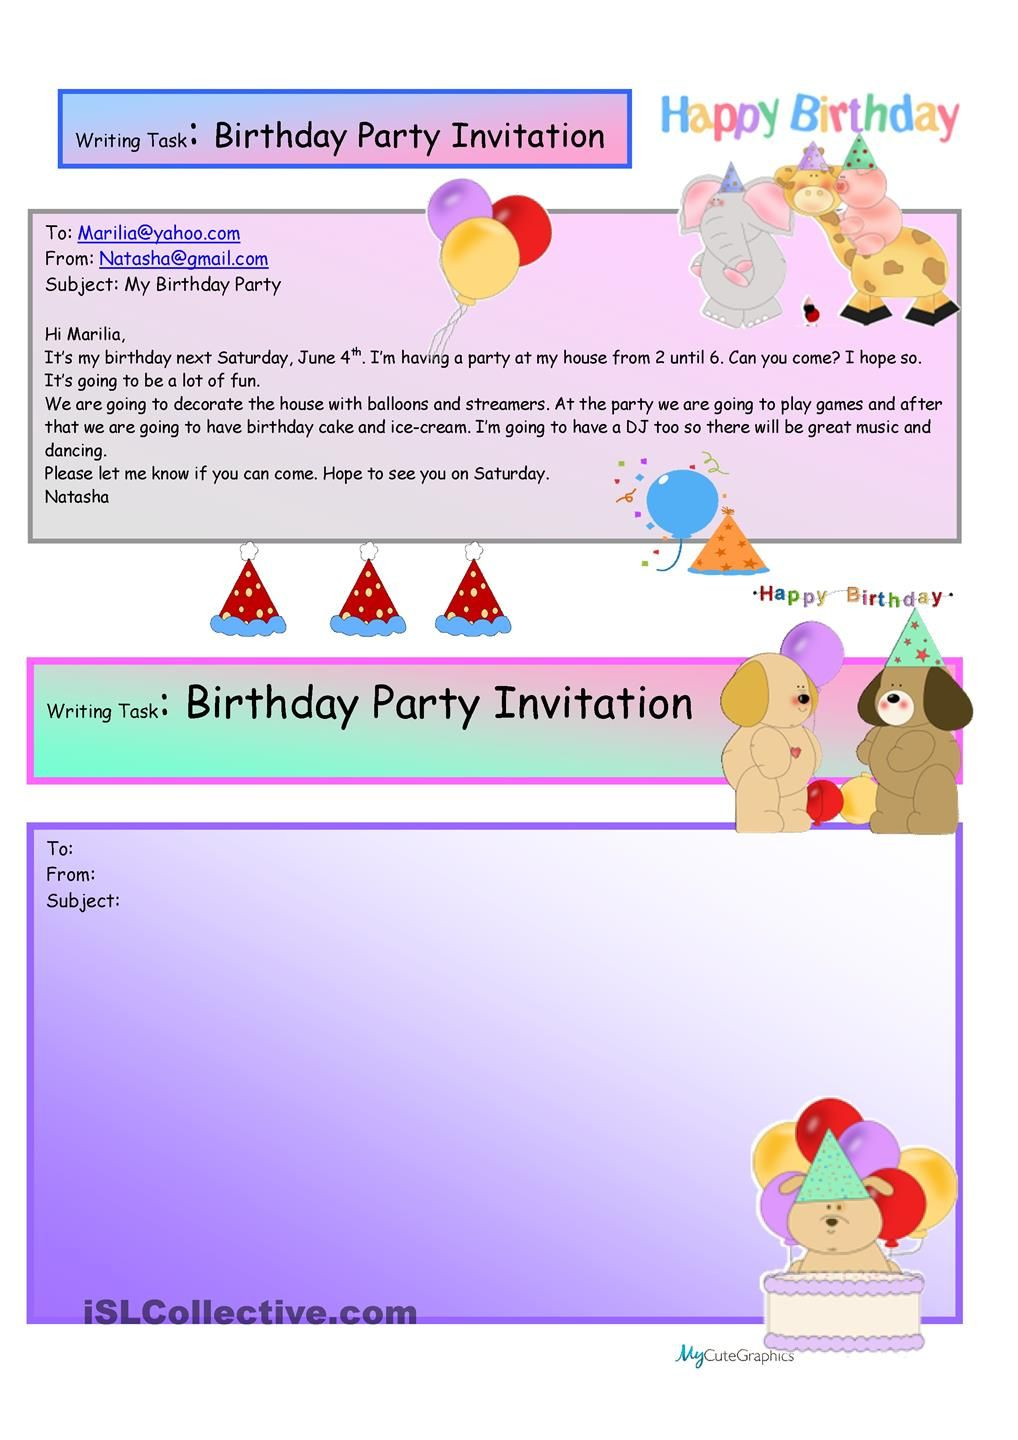 creative writing birthday party invite 16 a1 level grade 3 creative writing birthday party. Black Bedroom Furniture Sets. Home Design Ideas